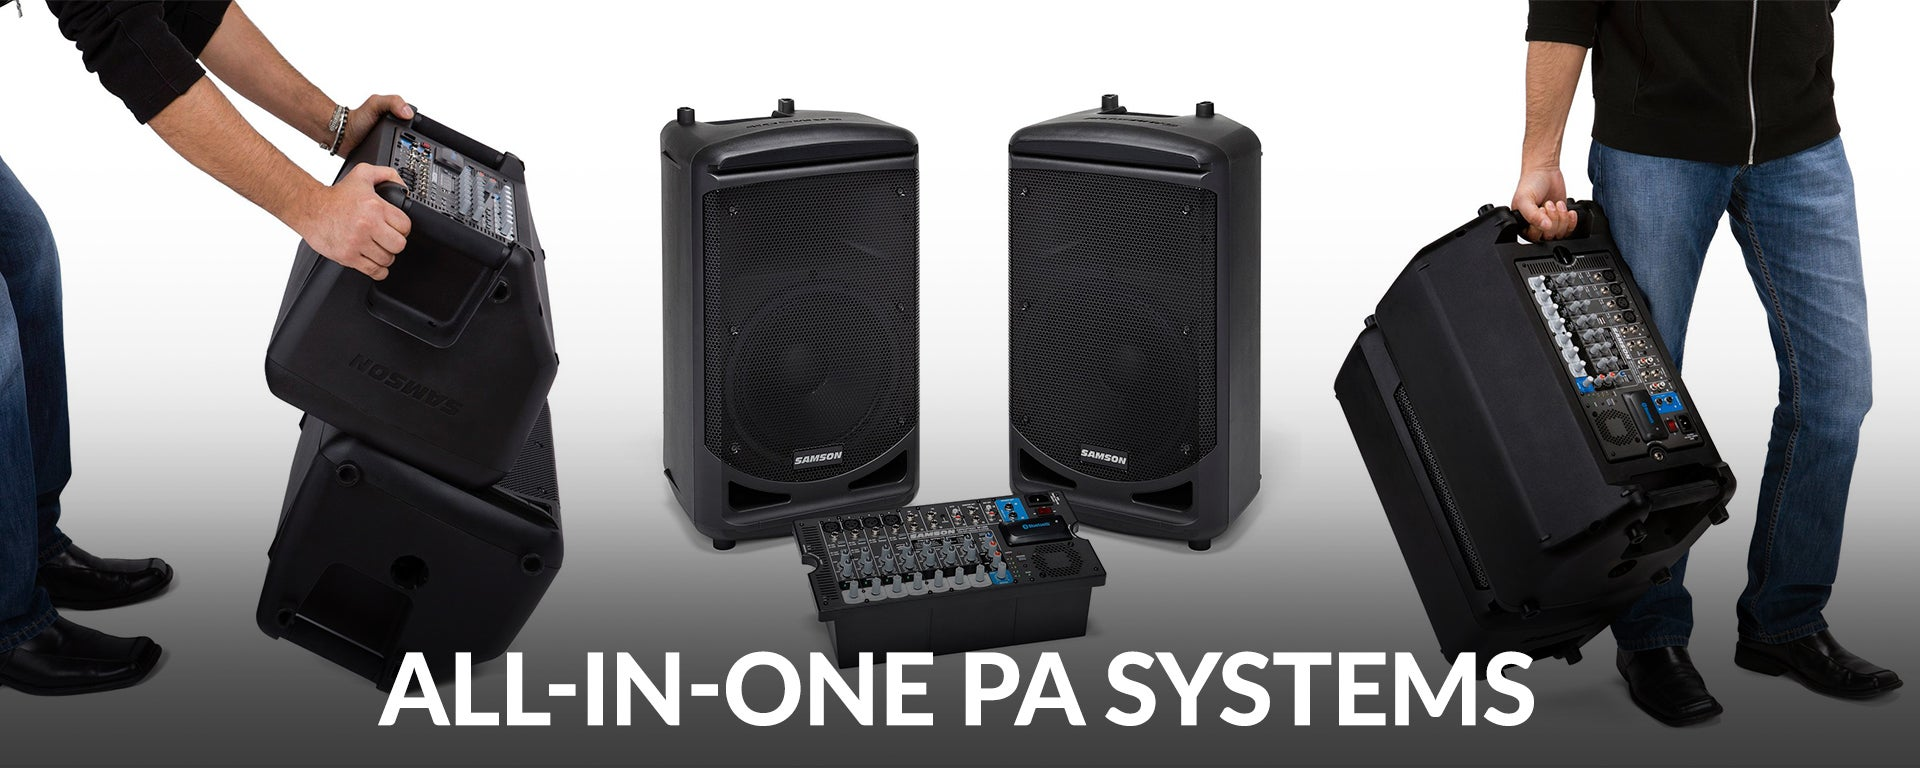 All In One PA Systems at SamAsh.com